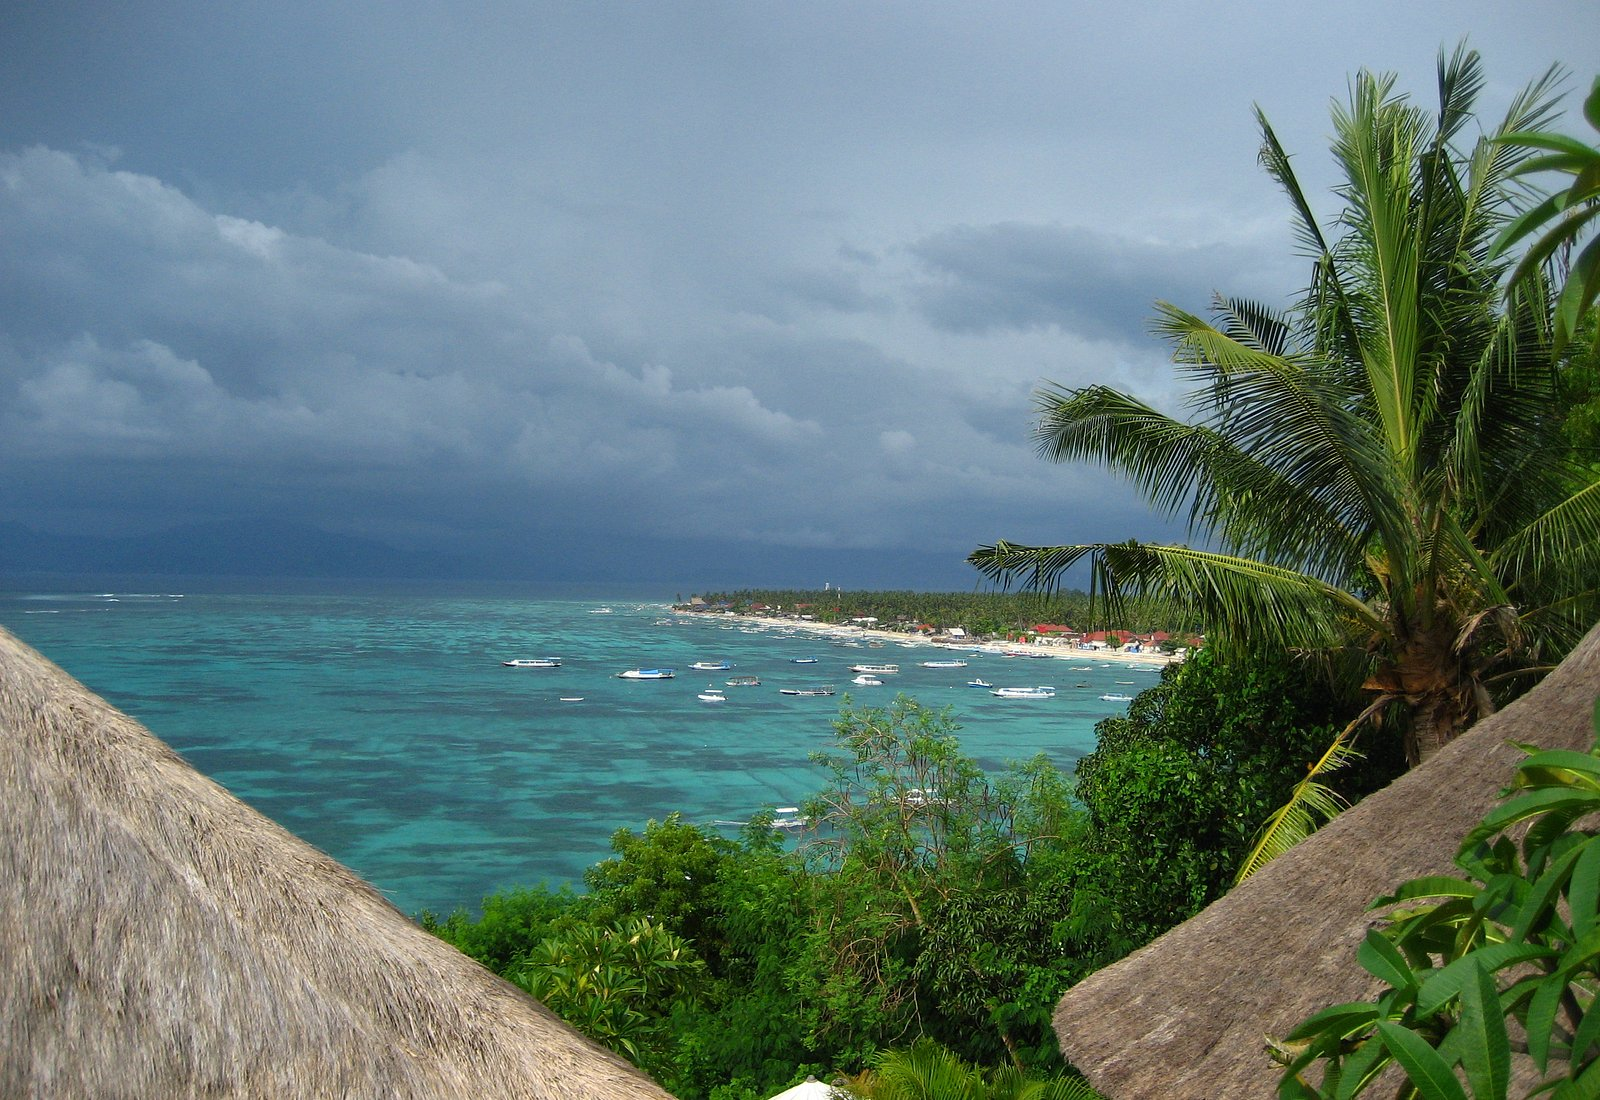 A view over the seaweed fields of Lembongan.  Bali on the horizon